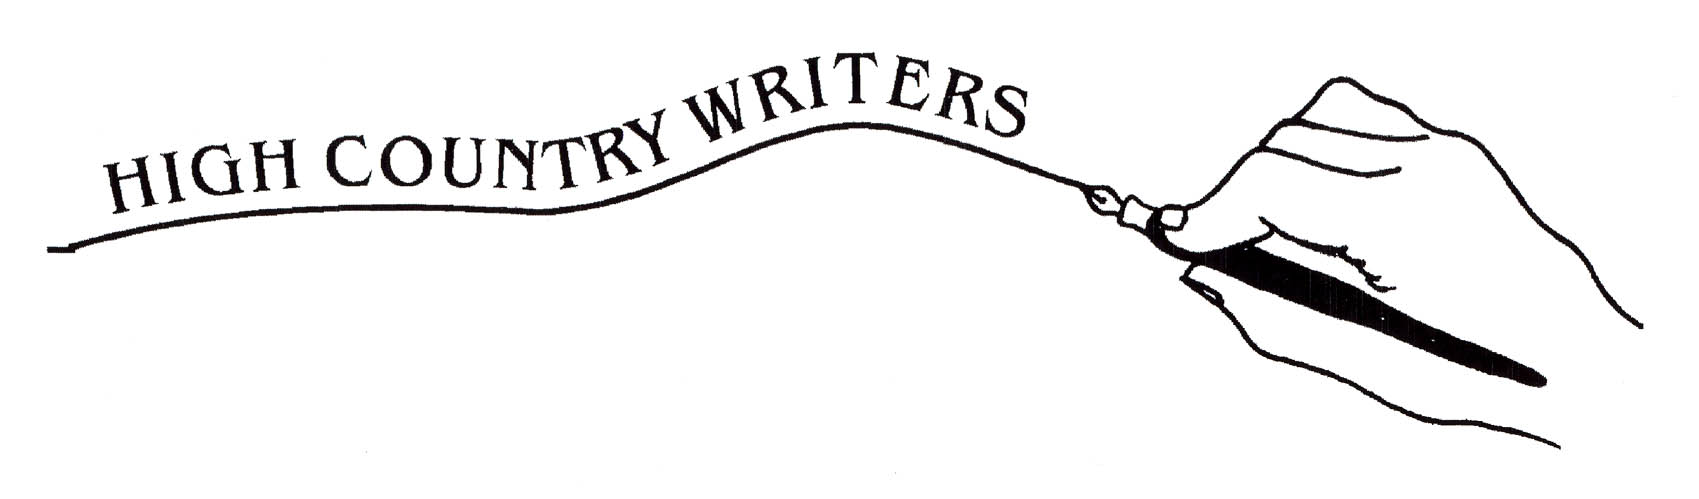 High Country Writers